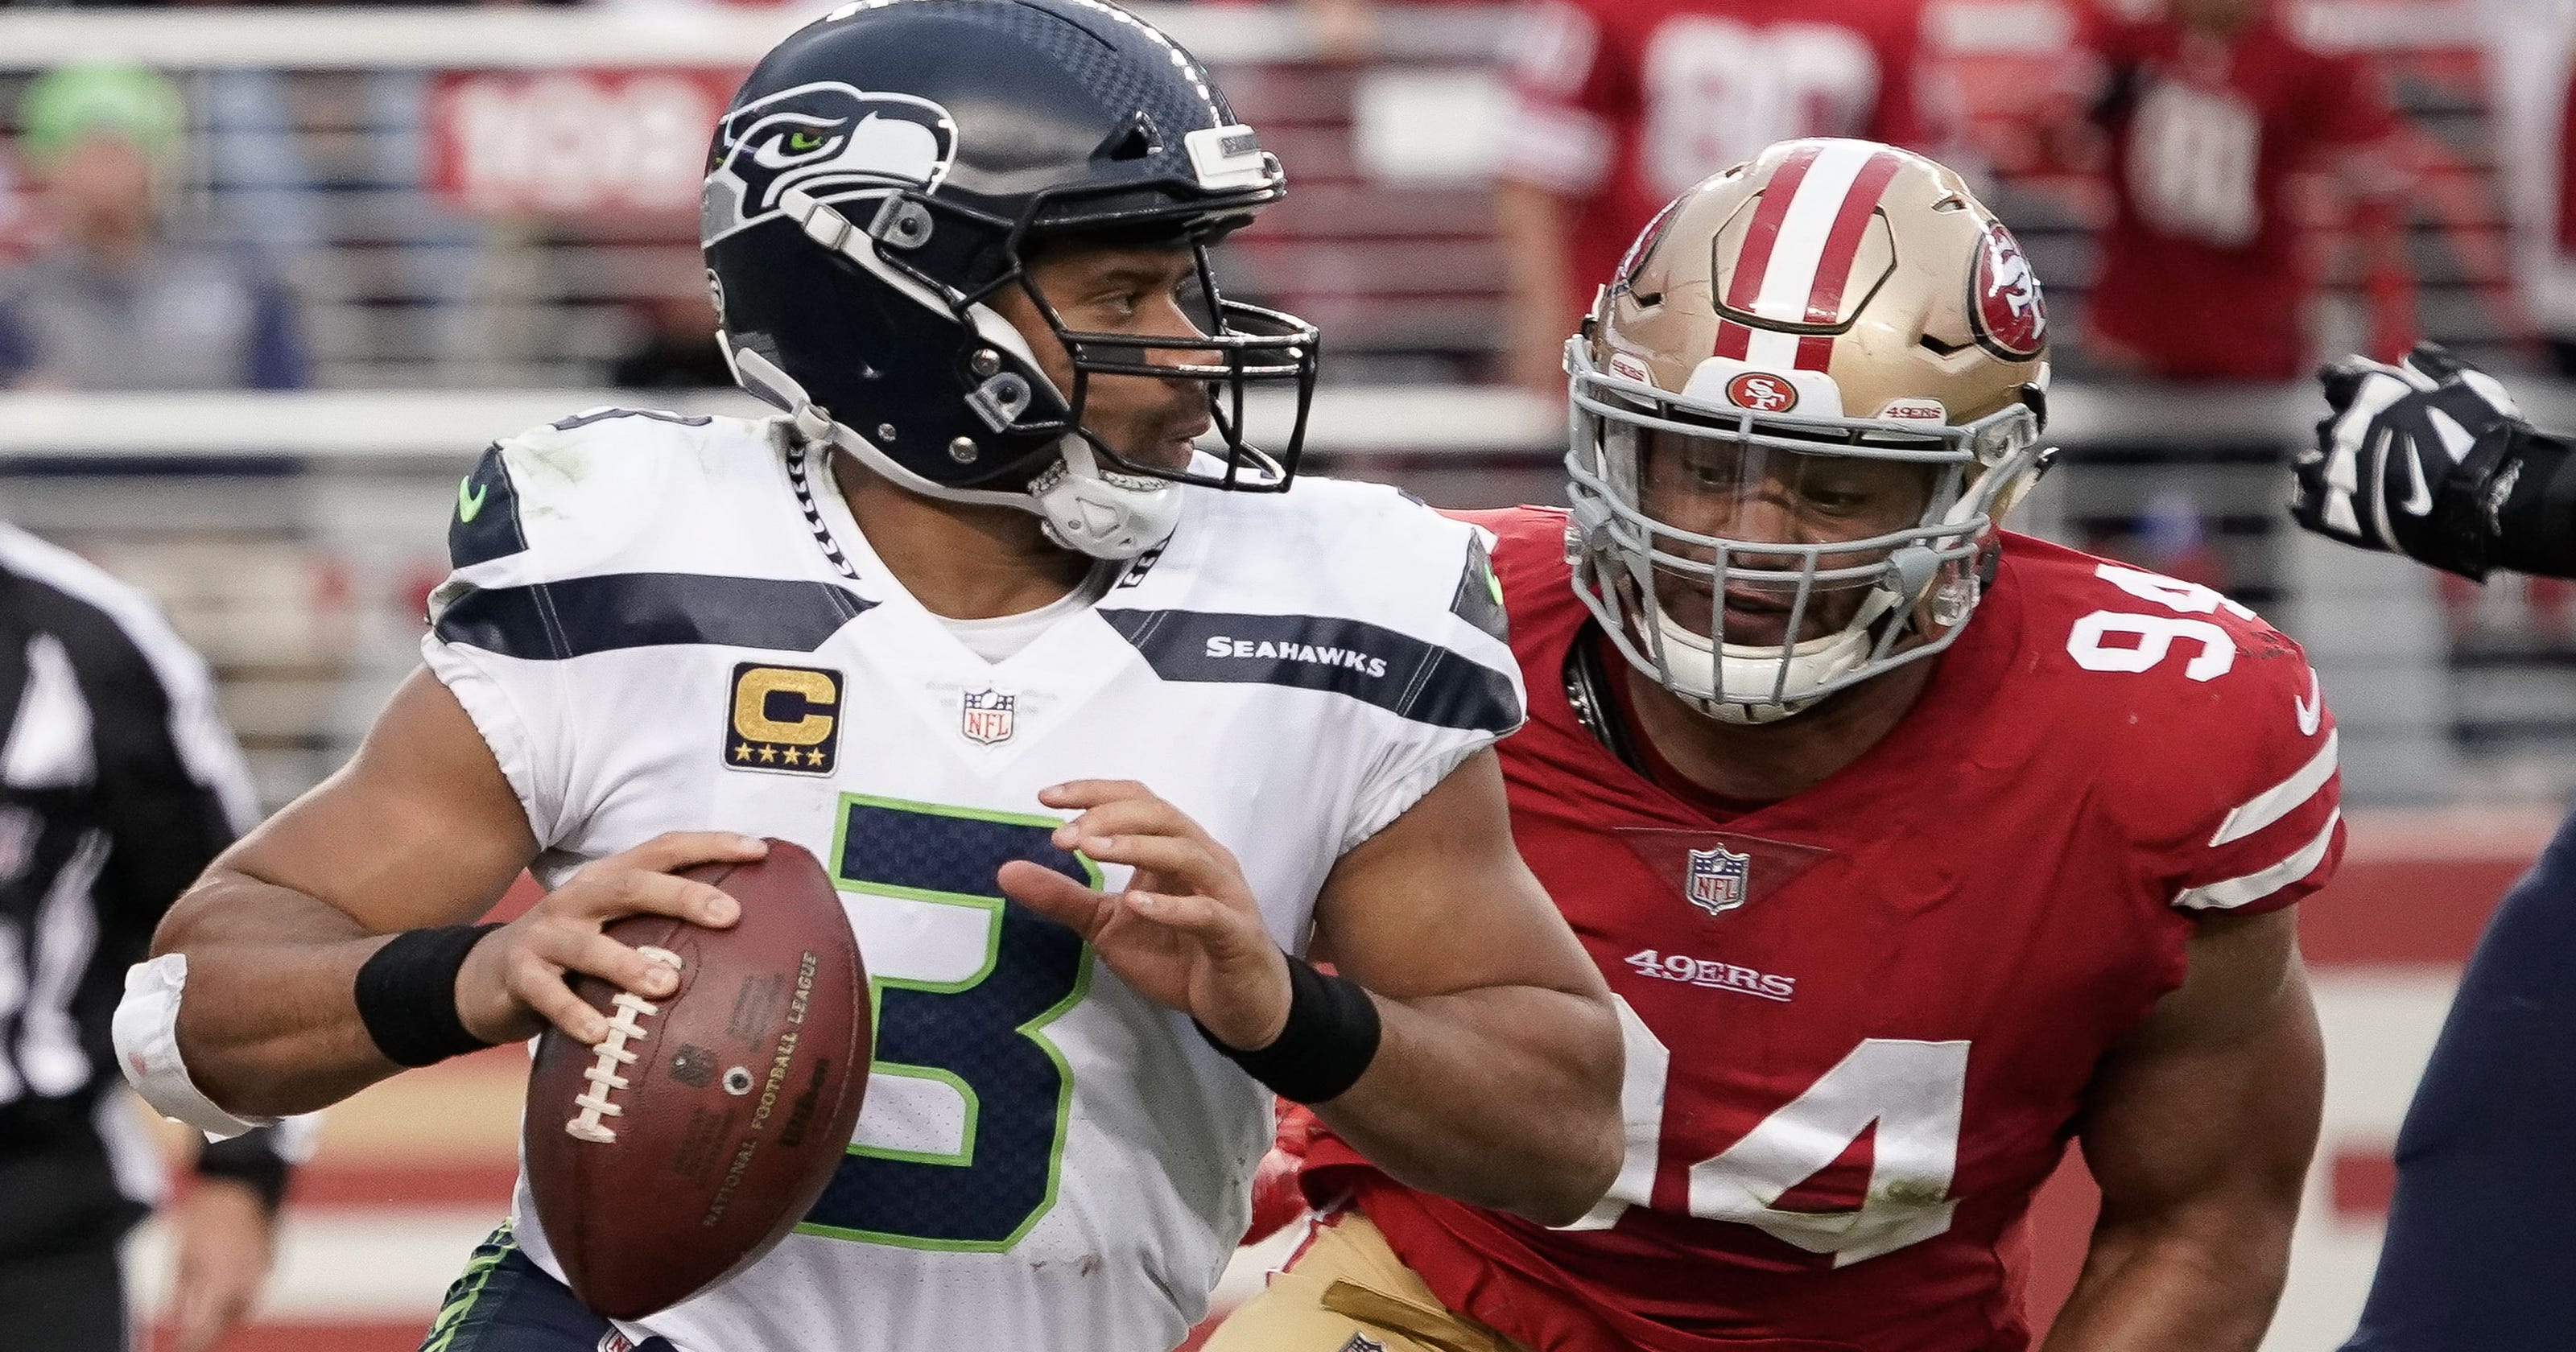 67c20fc762b Russell Wilson accounts for 3 TDs in Seahawks win vs. 49ers